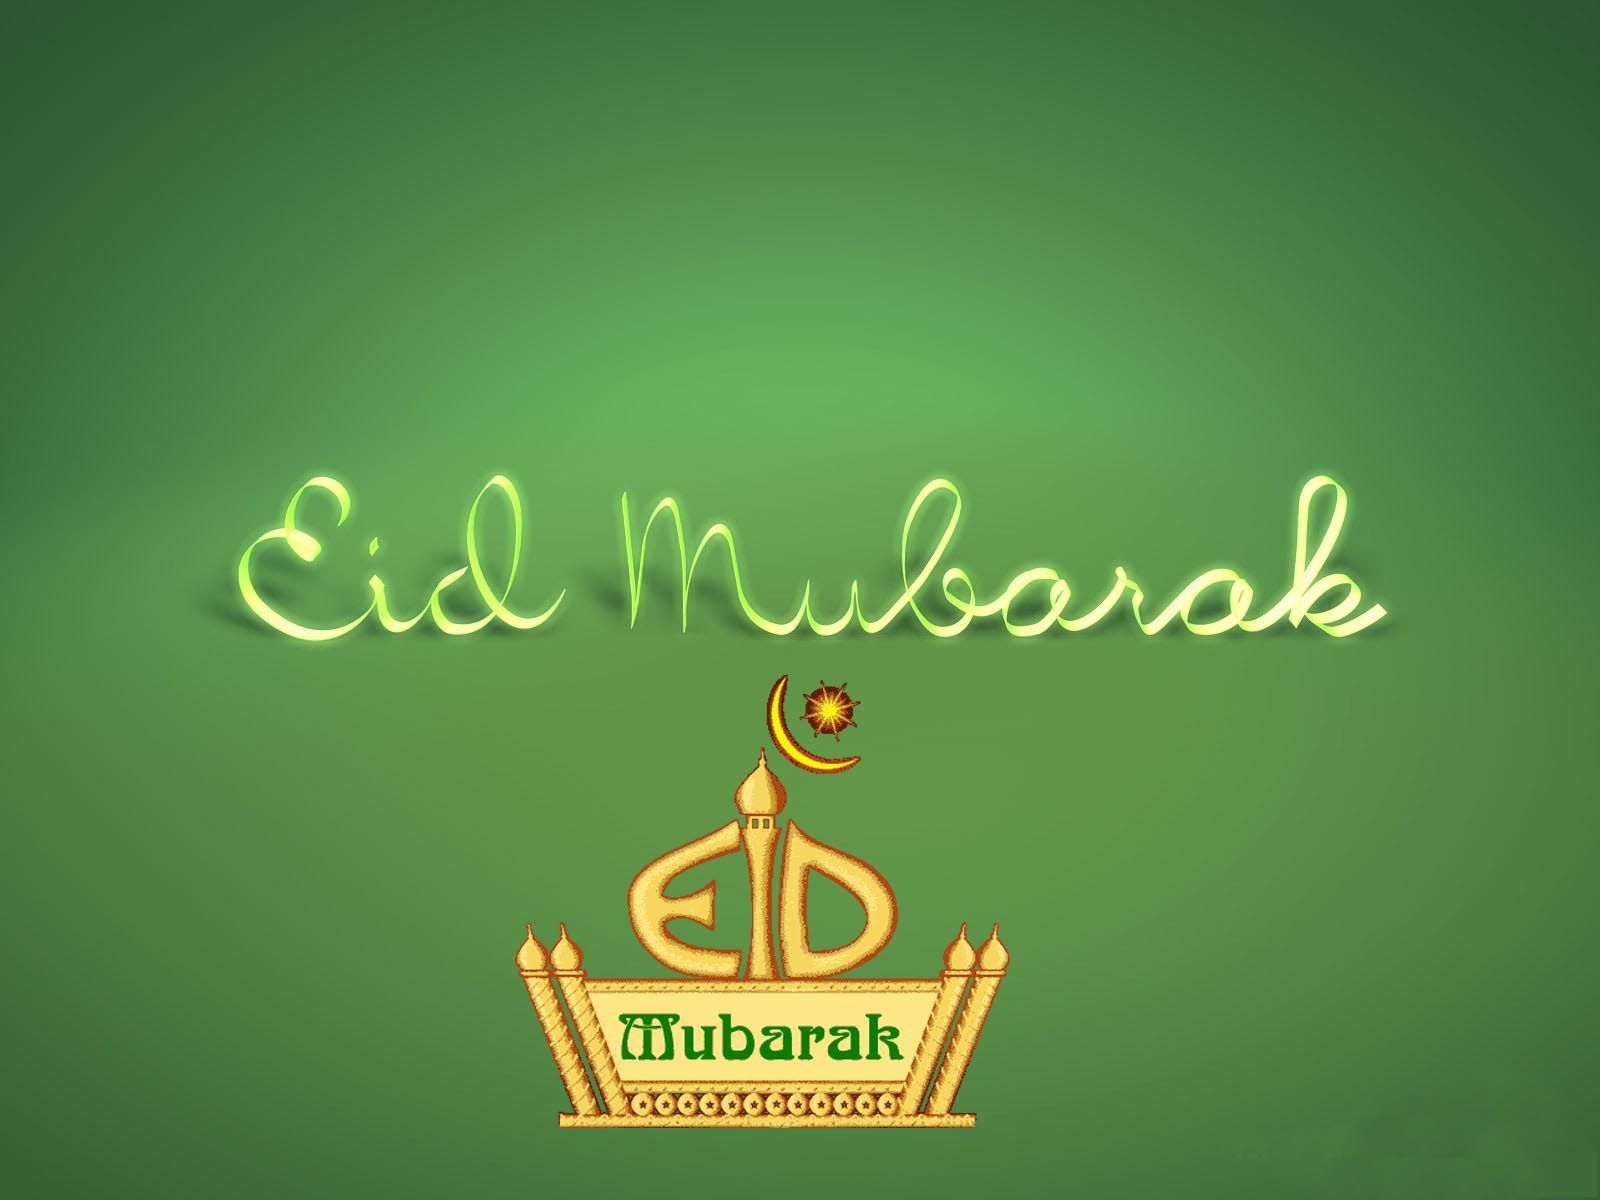 Eid Ul Adha Greetings Cards And Messages With Images Happy